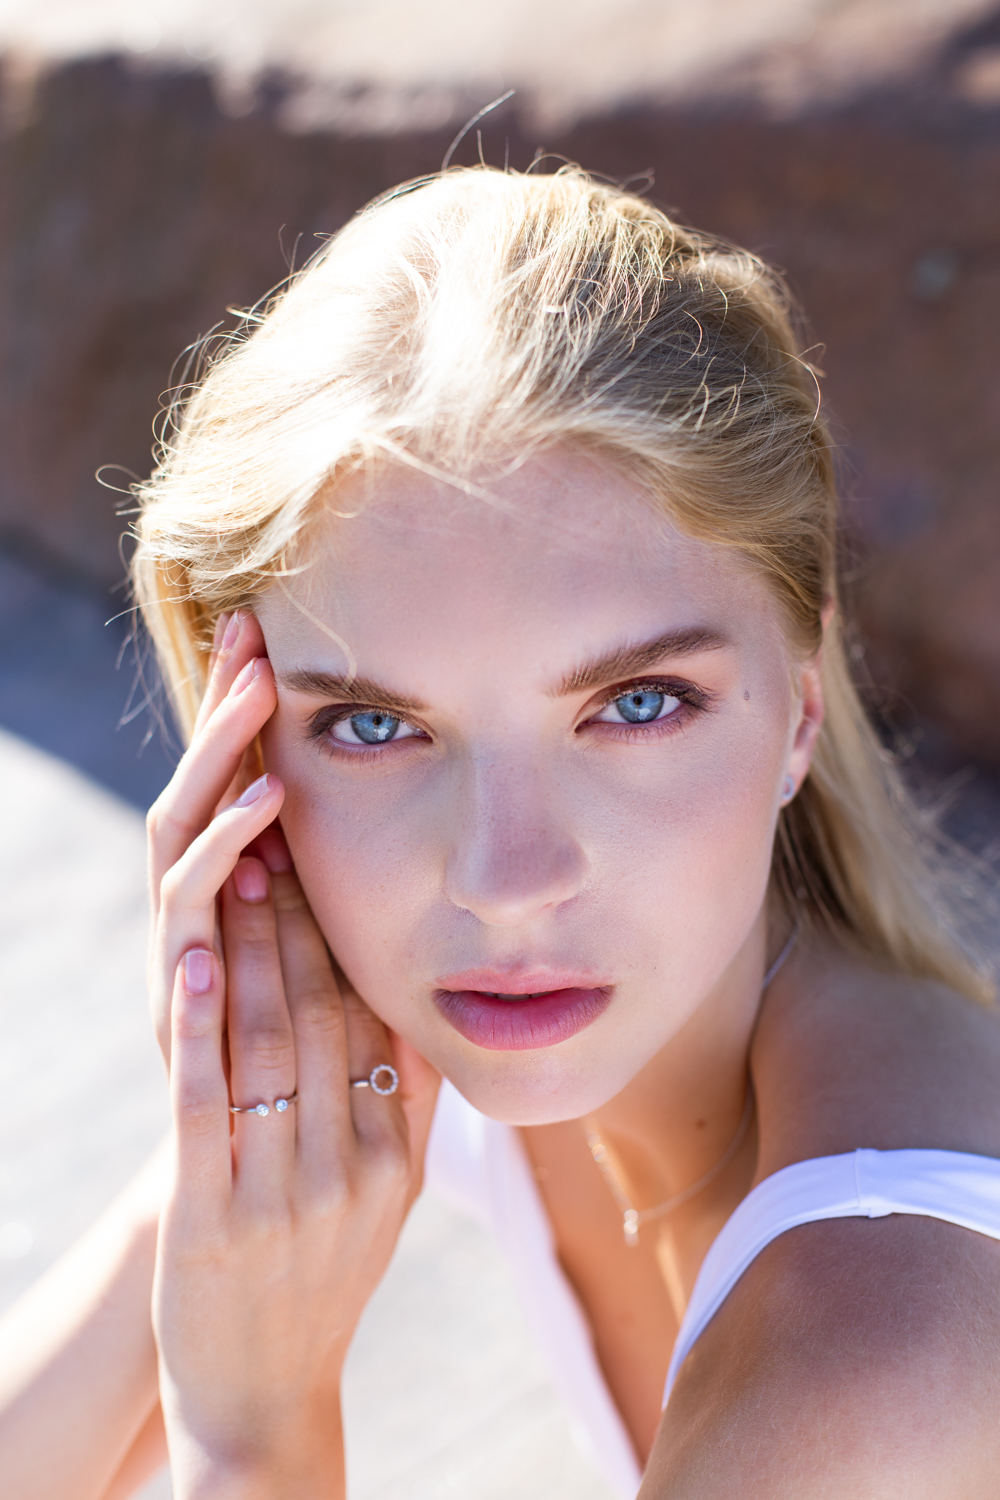 IT'S TIME TO SHINE - Add a touch of sparkle to your summer look with these beauties. From our sustainably grown diamonds to recycled gold, every design is made with intention and to bring joy for a lifetime and longer! Enjoy free returns.